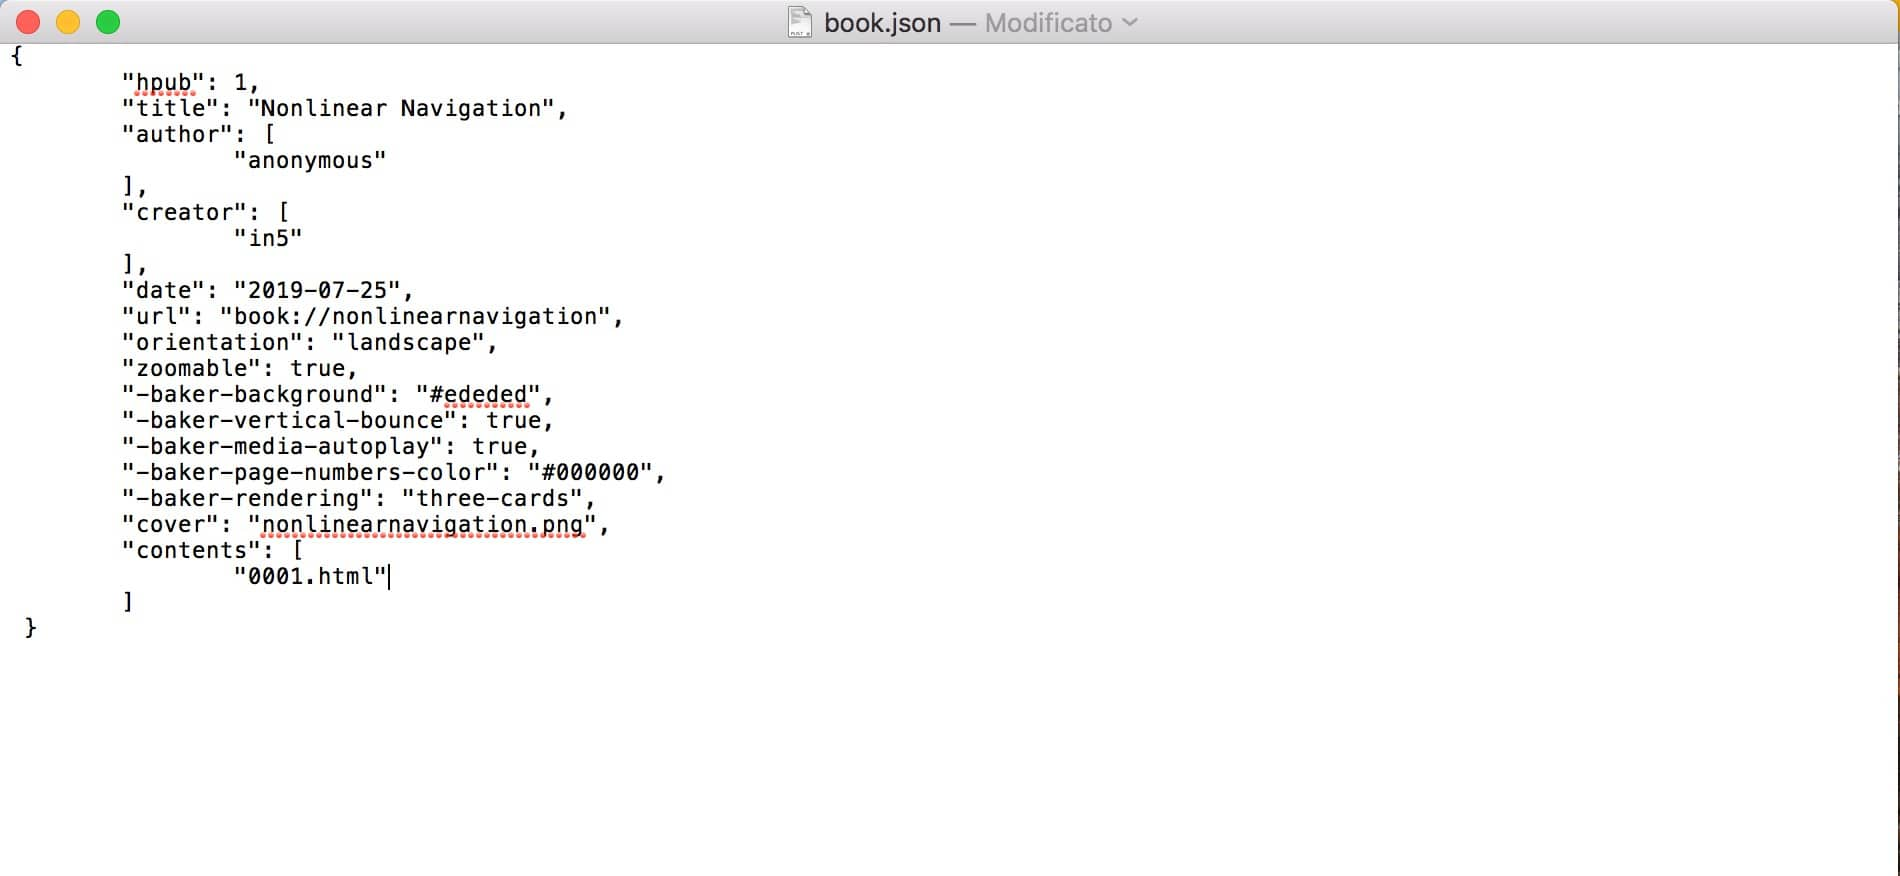 modified JSON with pages removed